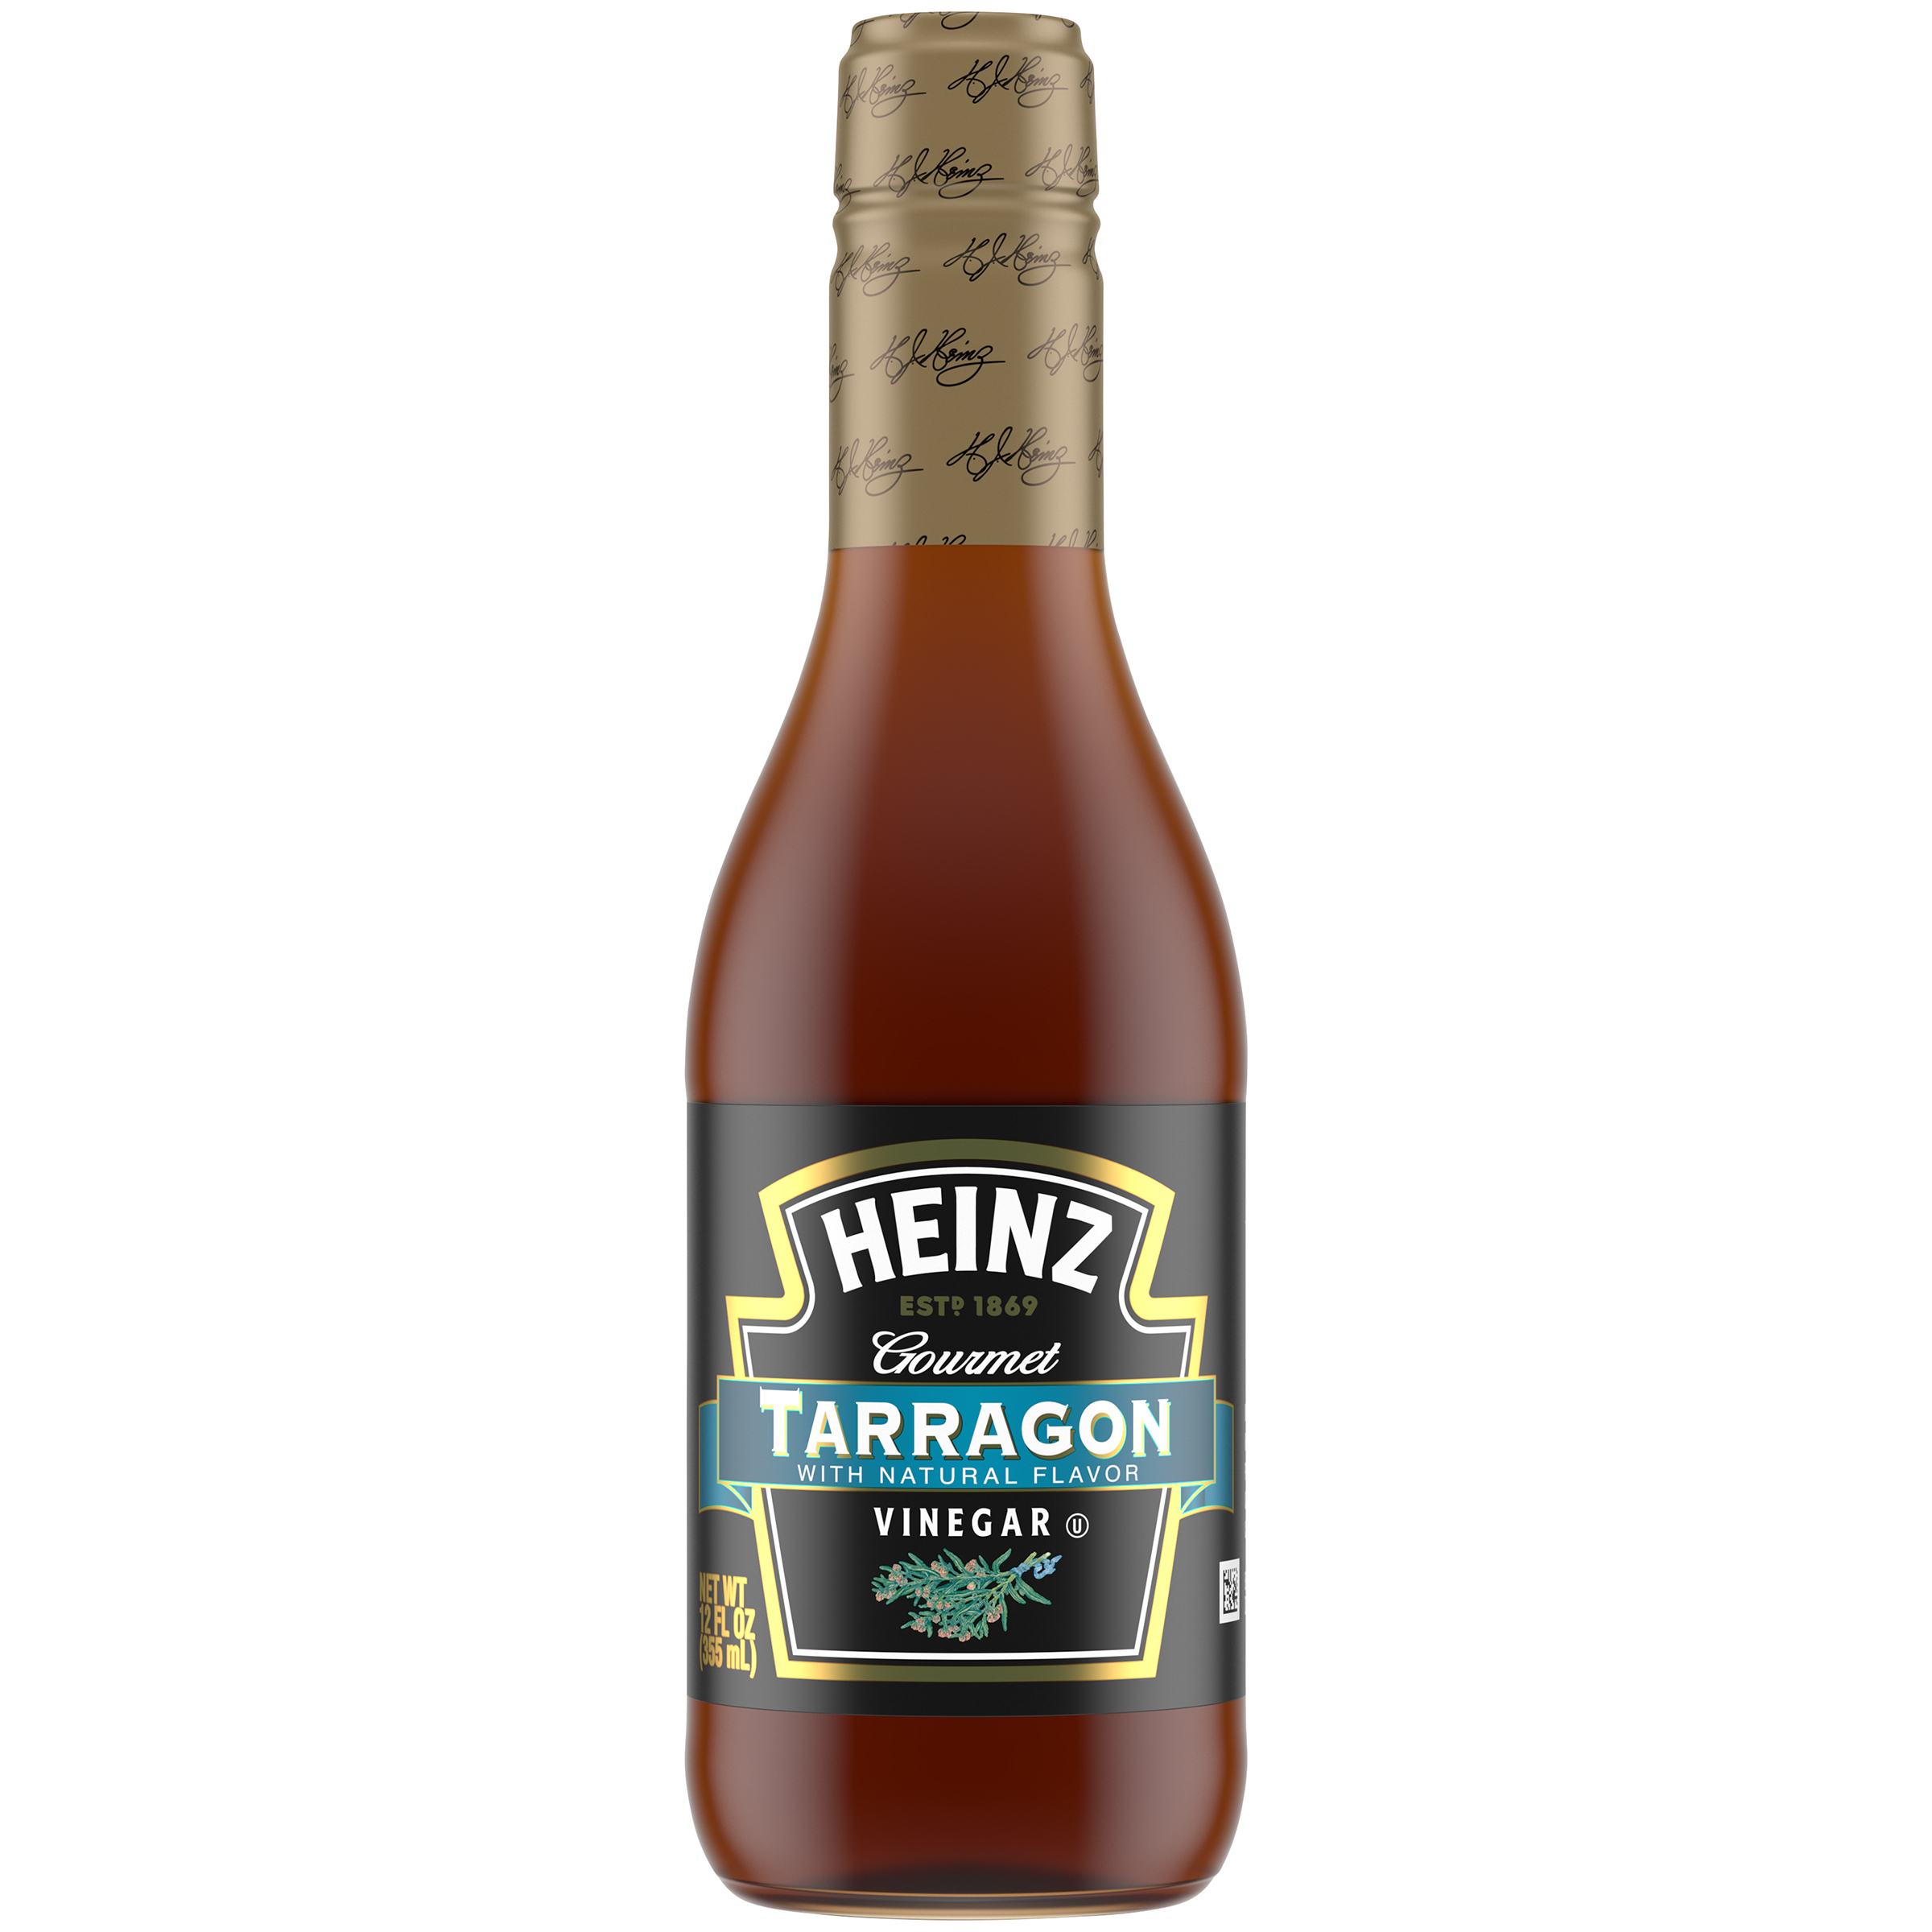 Heinz Gourmet Tarragon Vinegar 12 fl oz Bottle